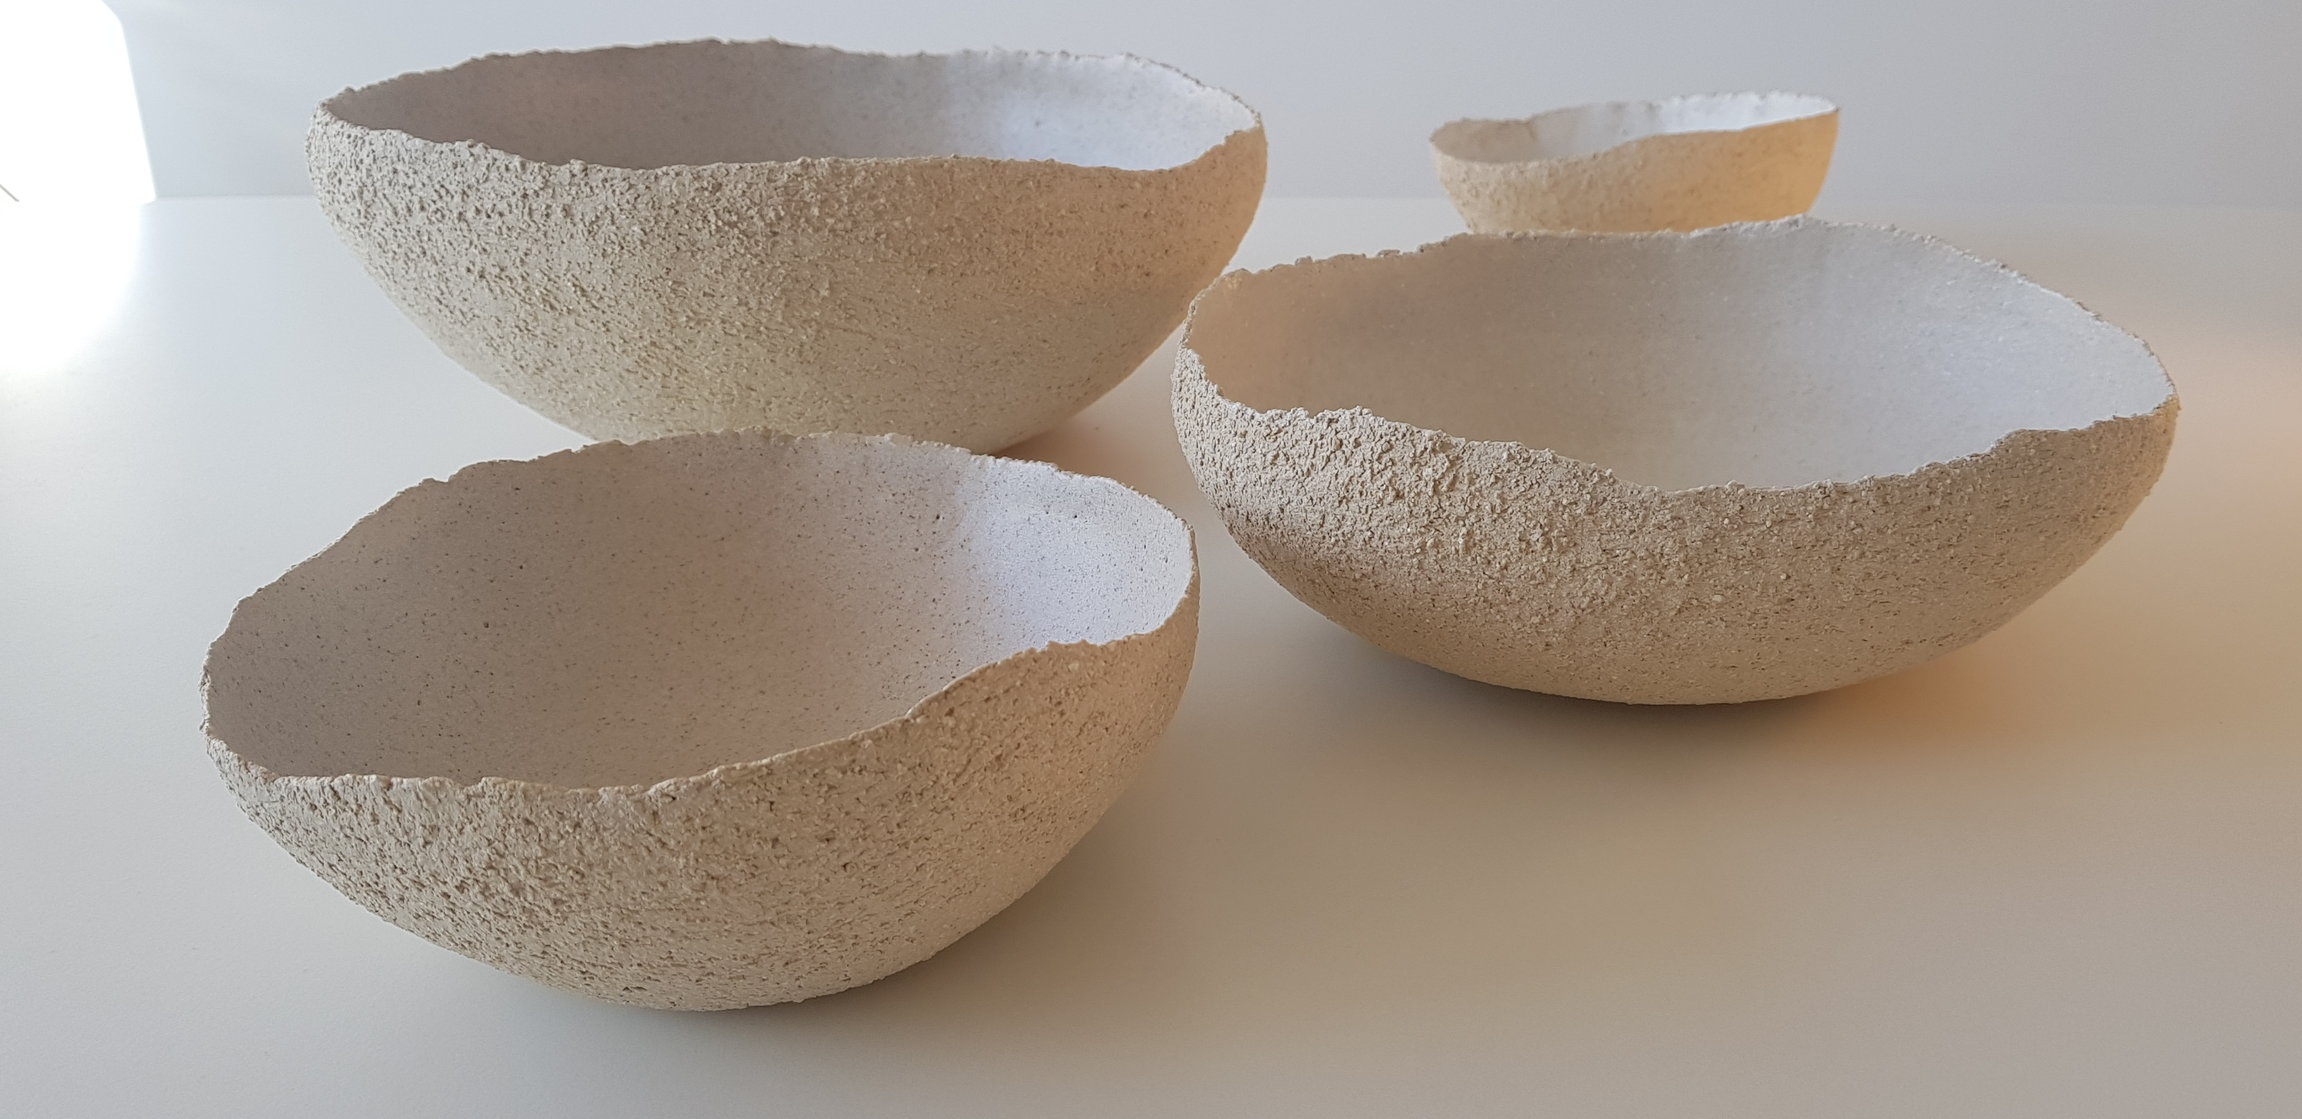 White Earth Bowl Medium Size , White Earth Bowl Big Size, White Earth Bowl XL Size